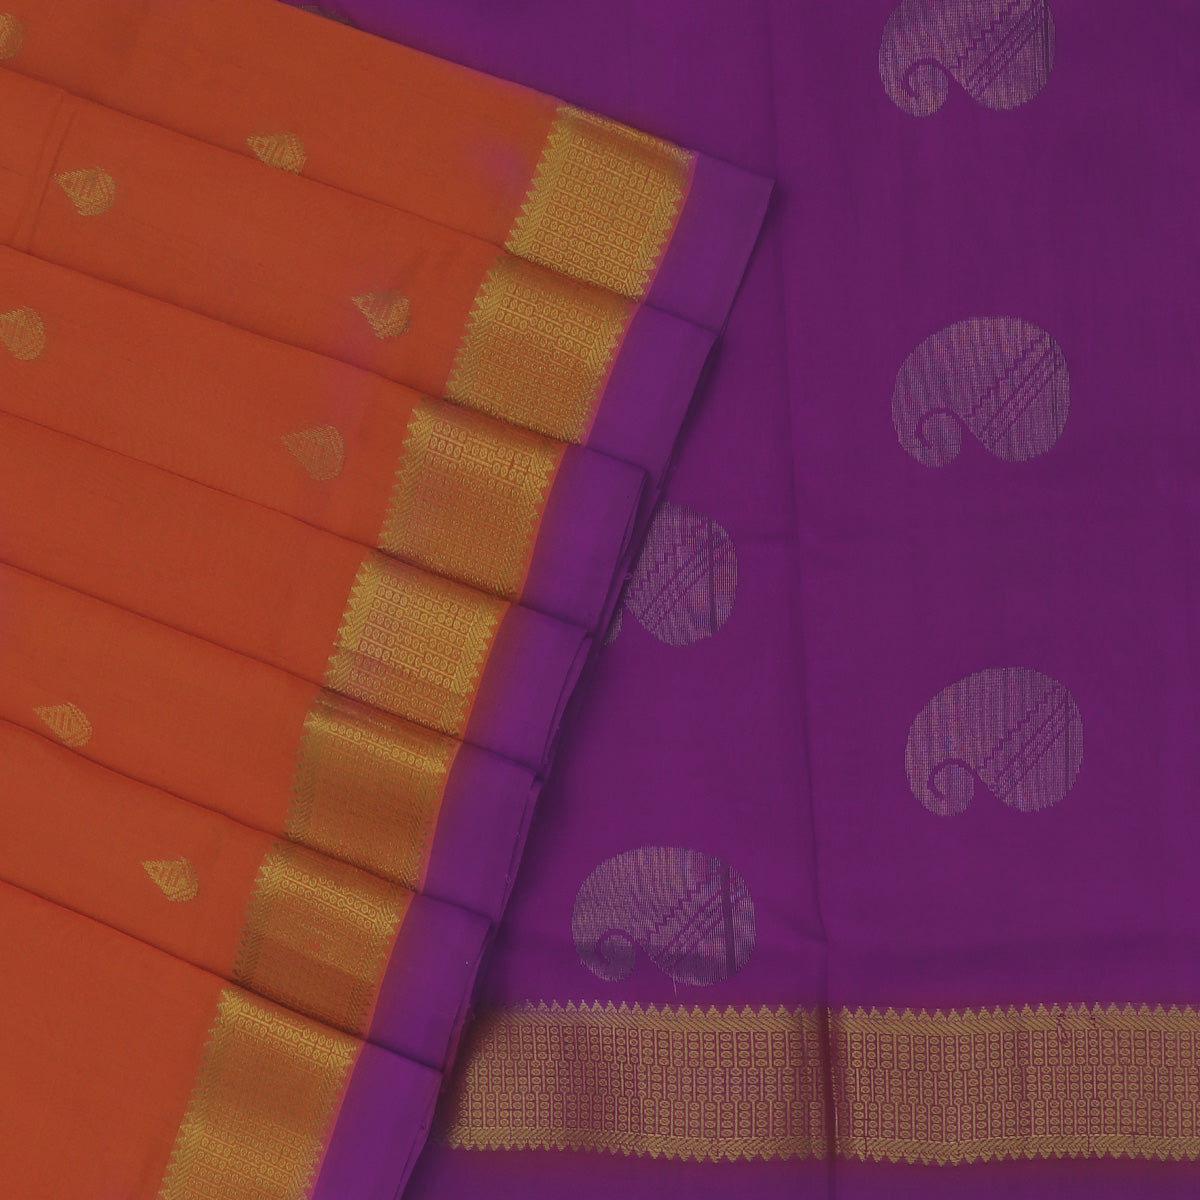 70d0832460 Buy Silk Cotton Saree Orange and Violet with Butta and simple zari border 9  yards at Prashanti Sarees for only Rs. 6,560.00